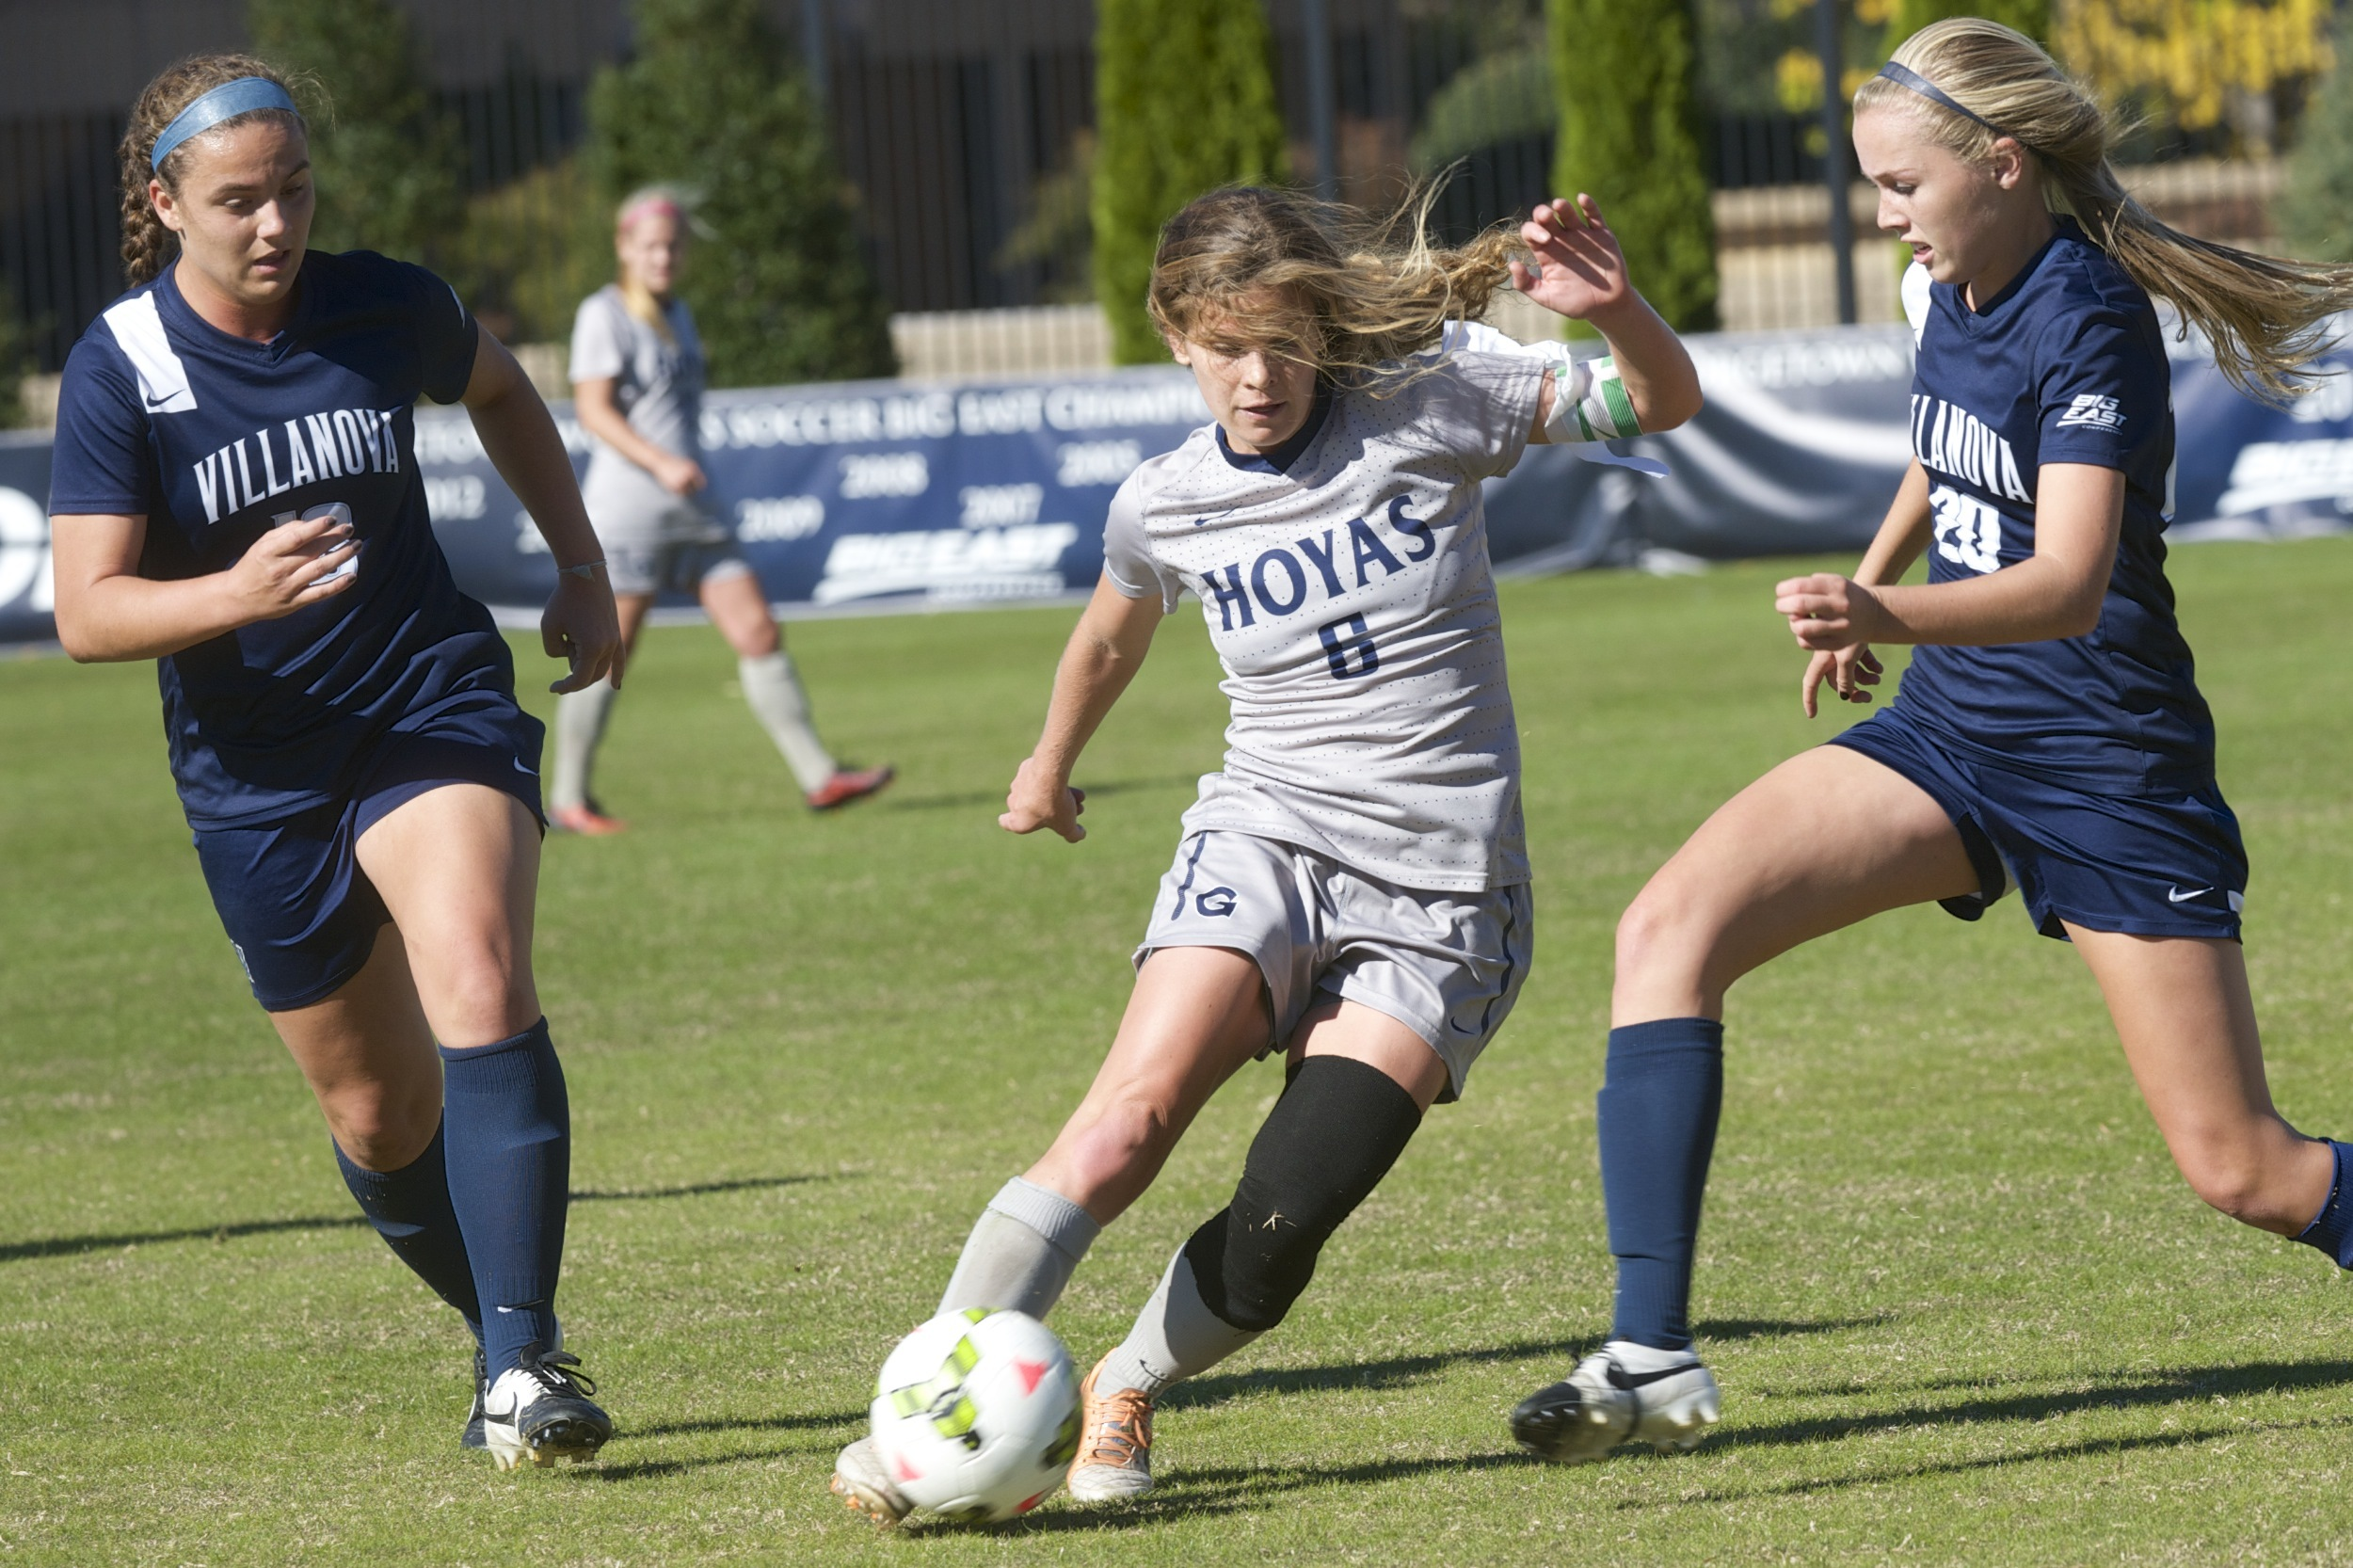 Georgetown University senior women's soccer player Daphne Corboz was among 16 Division I women's soccer players selected as a semifinalist for the Missouri Athletic Club's Hermann Trophy, recognizing the top player in the country.